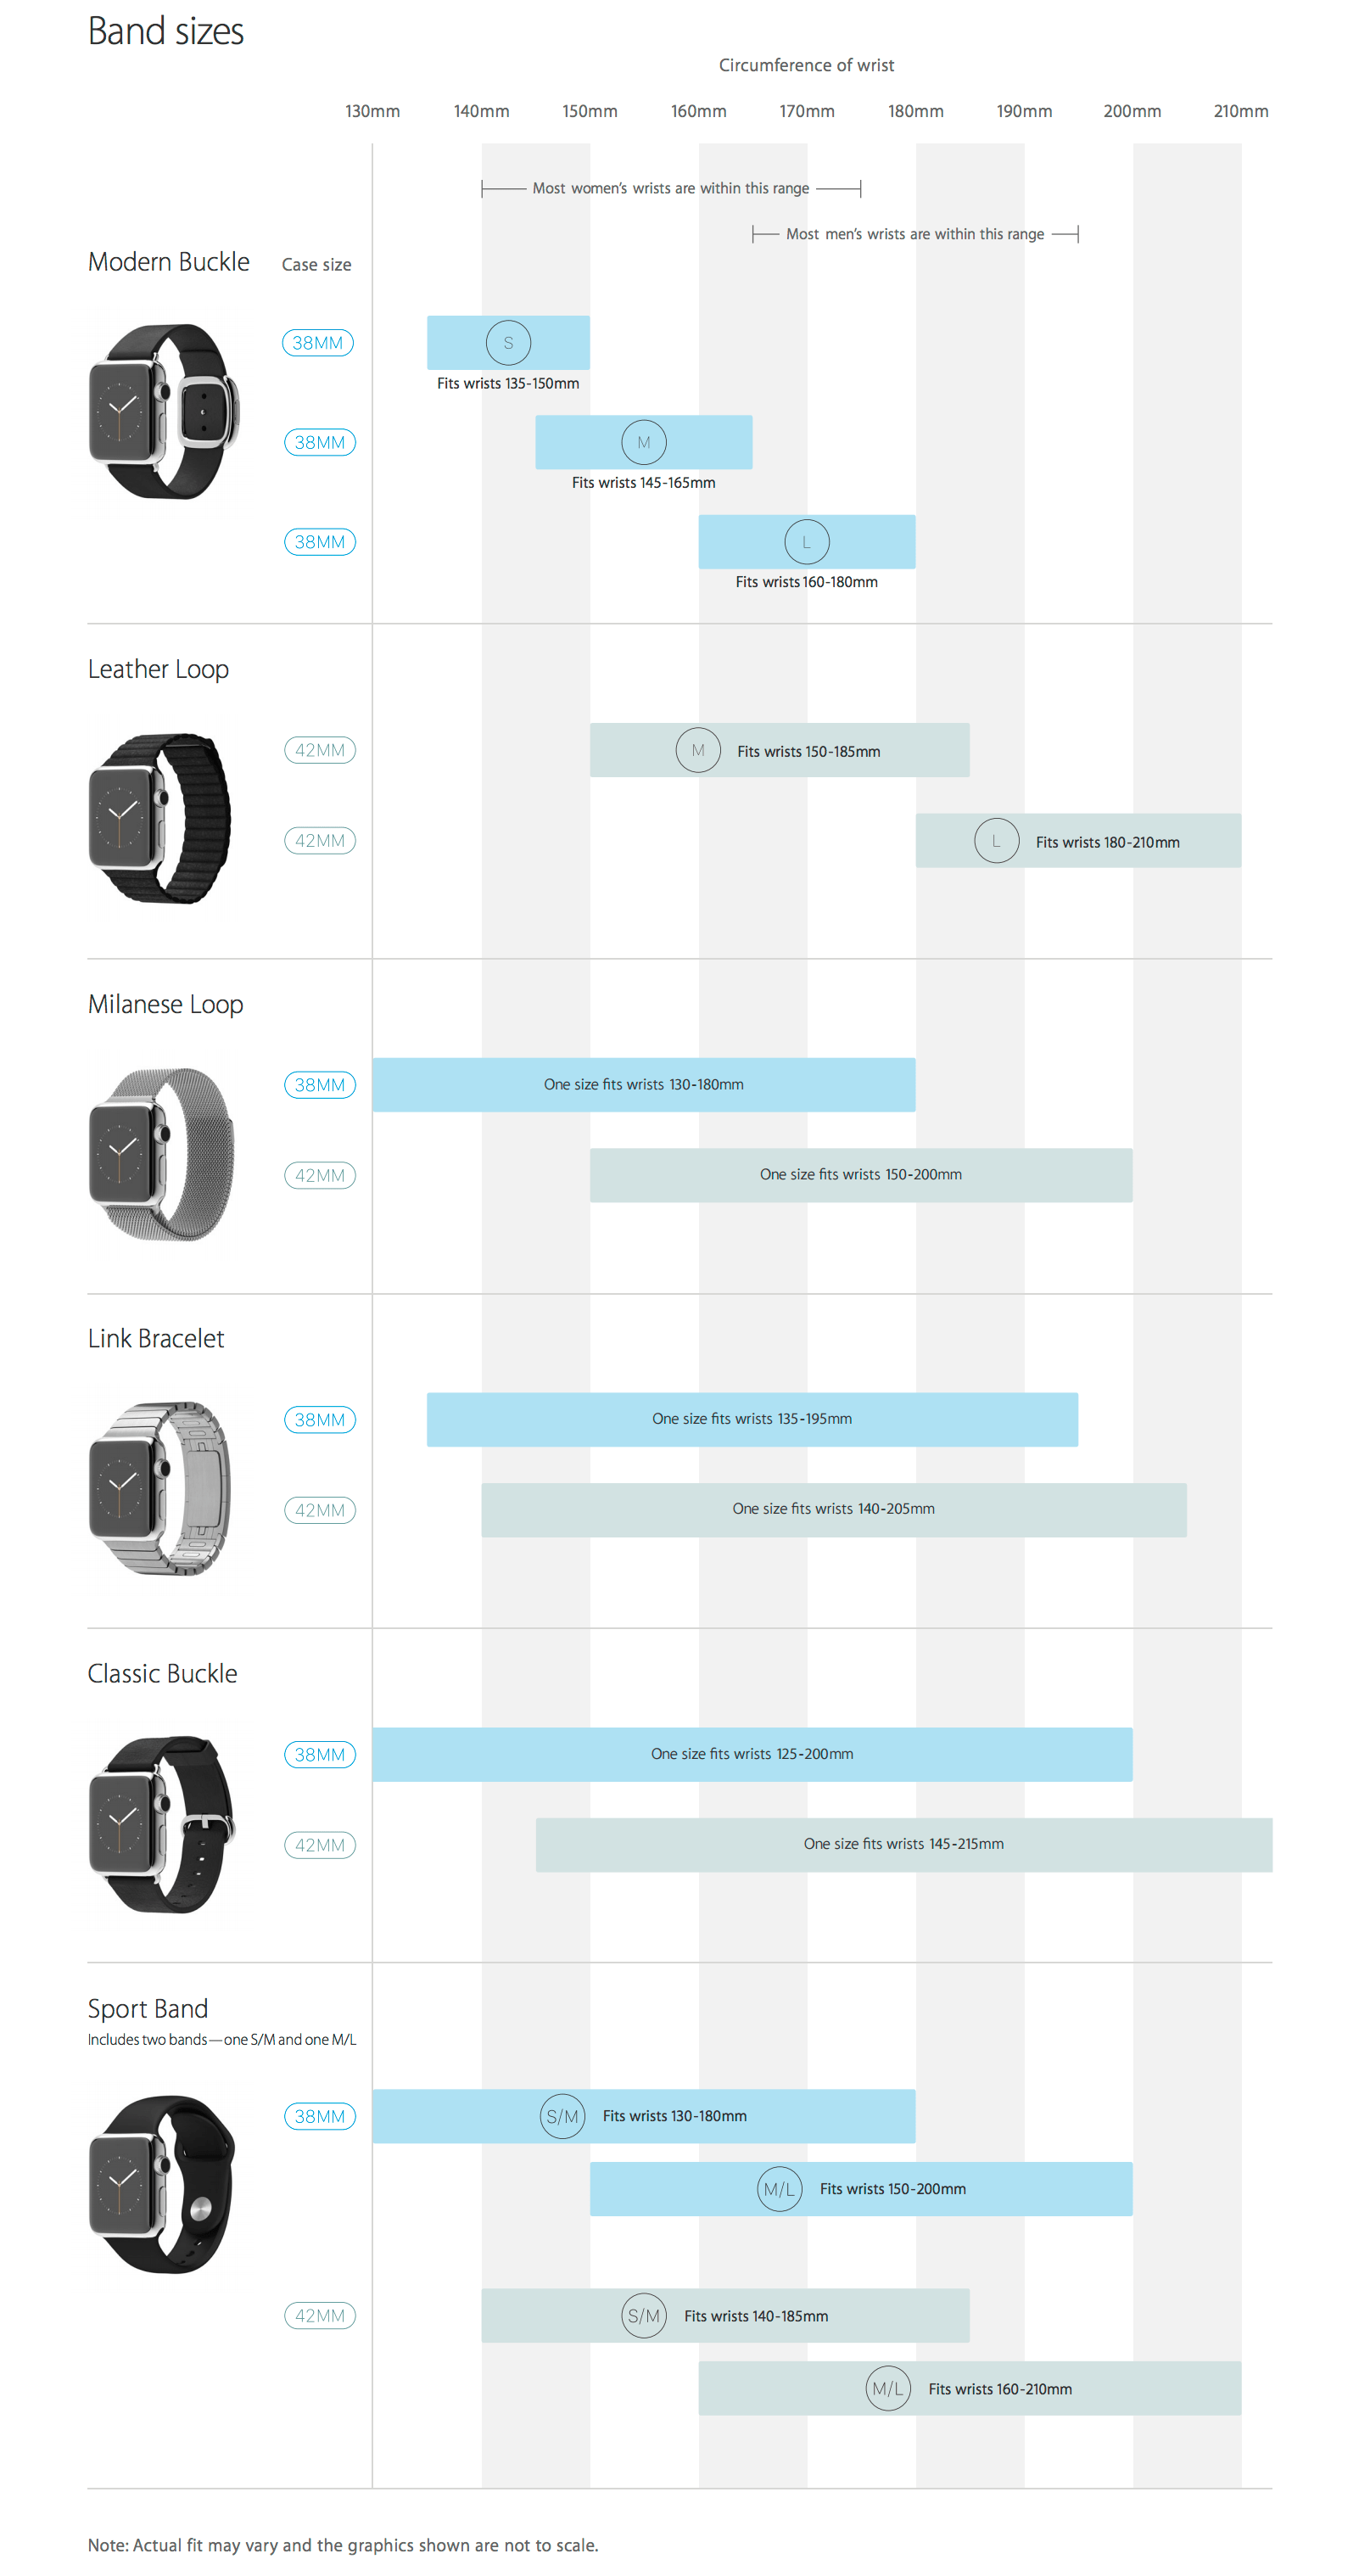 Size M Apple S Official Apple Watch Sizing Guide With Band Sizes 9to5mac